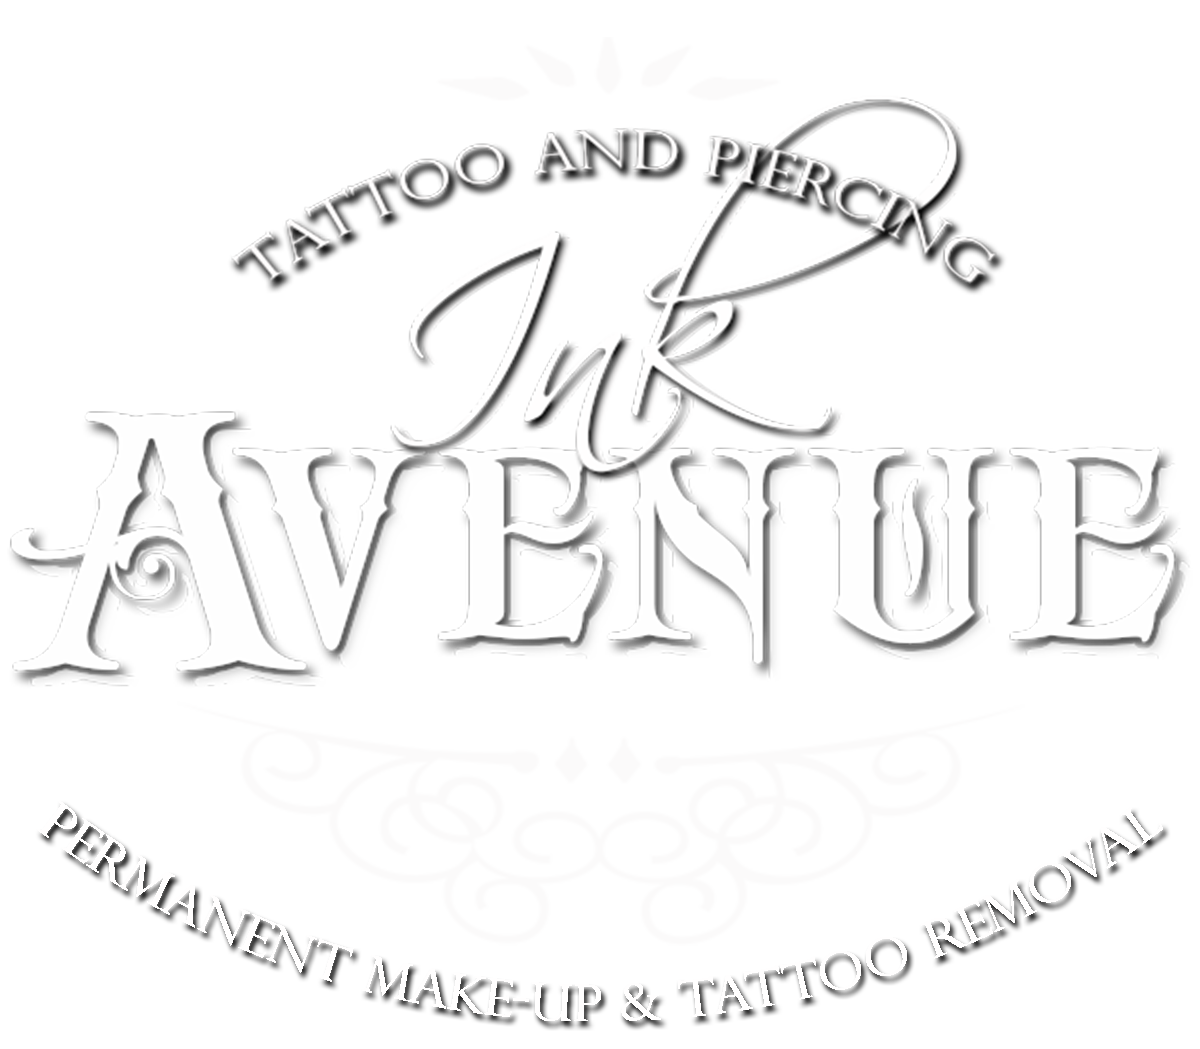 Ink Avenue Tattoo and Piercing